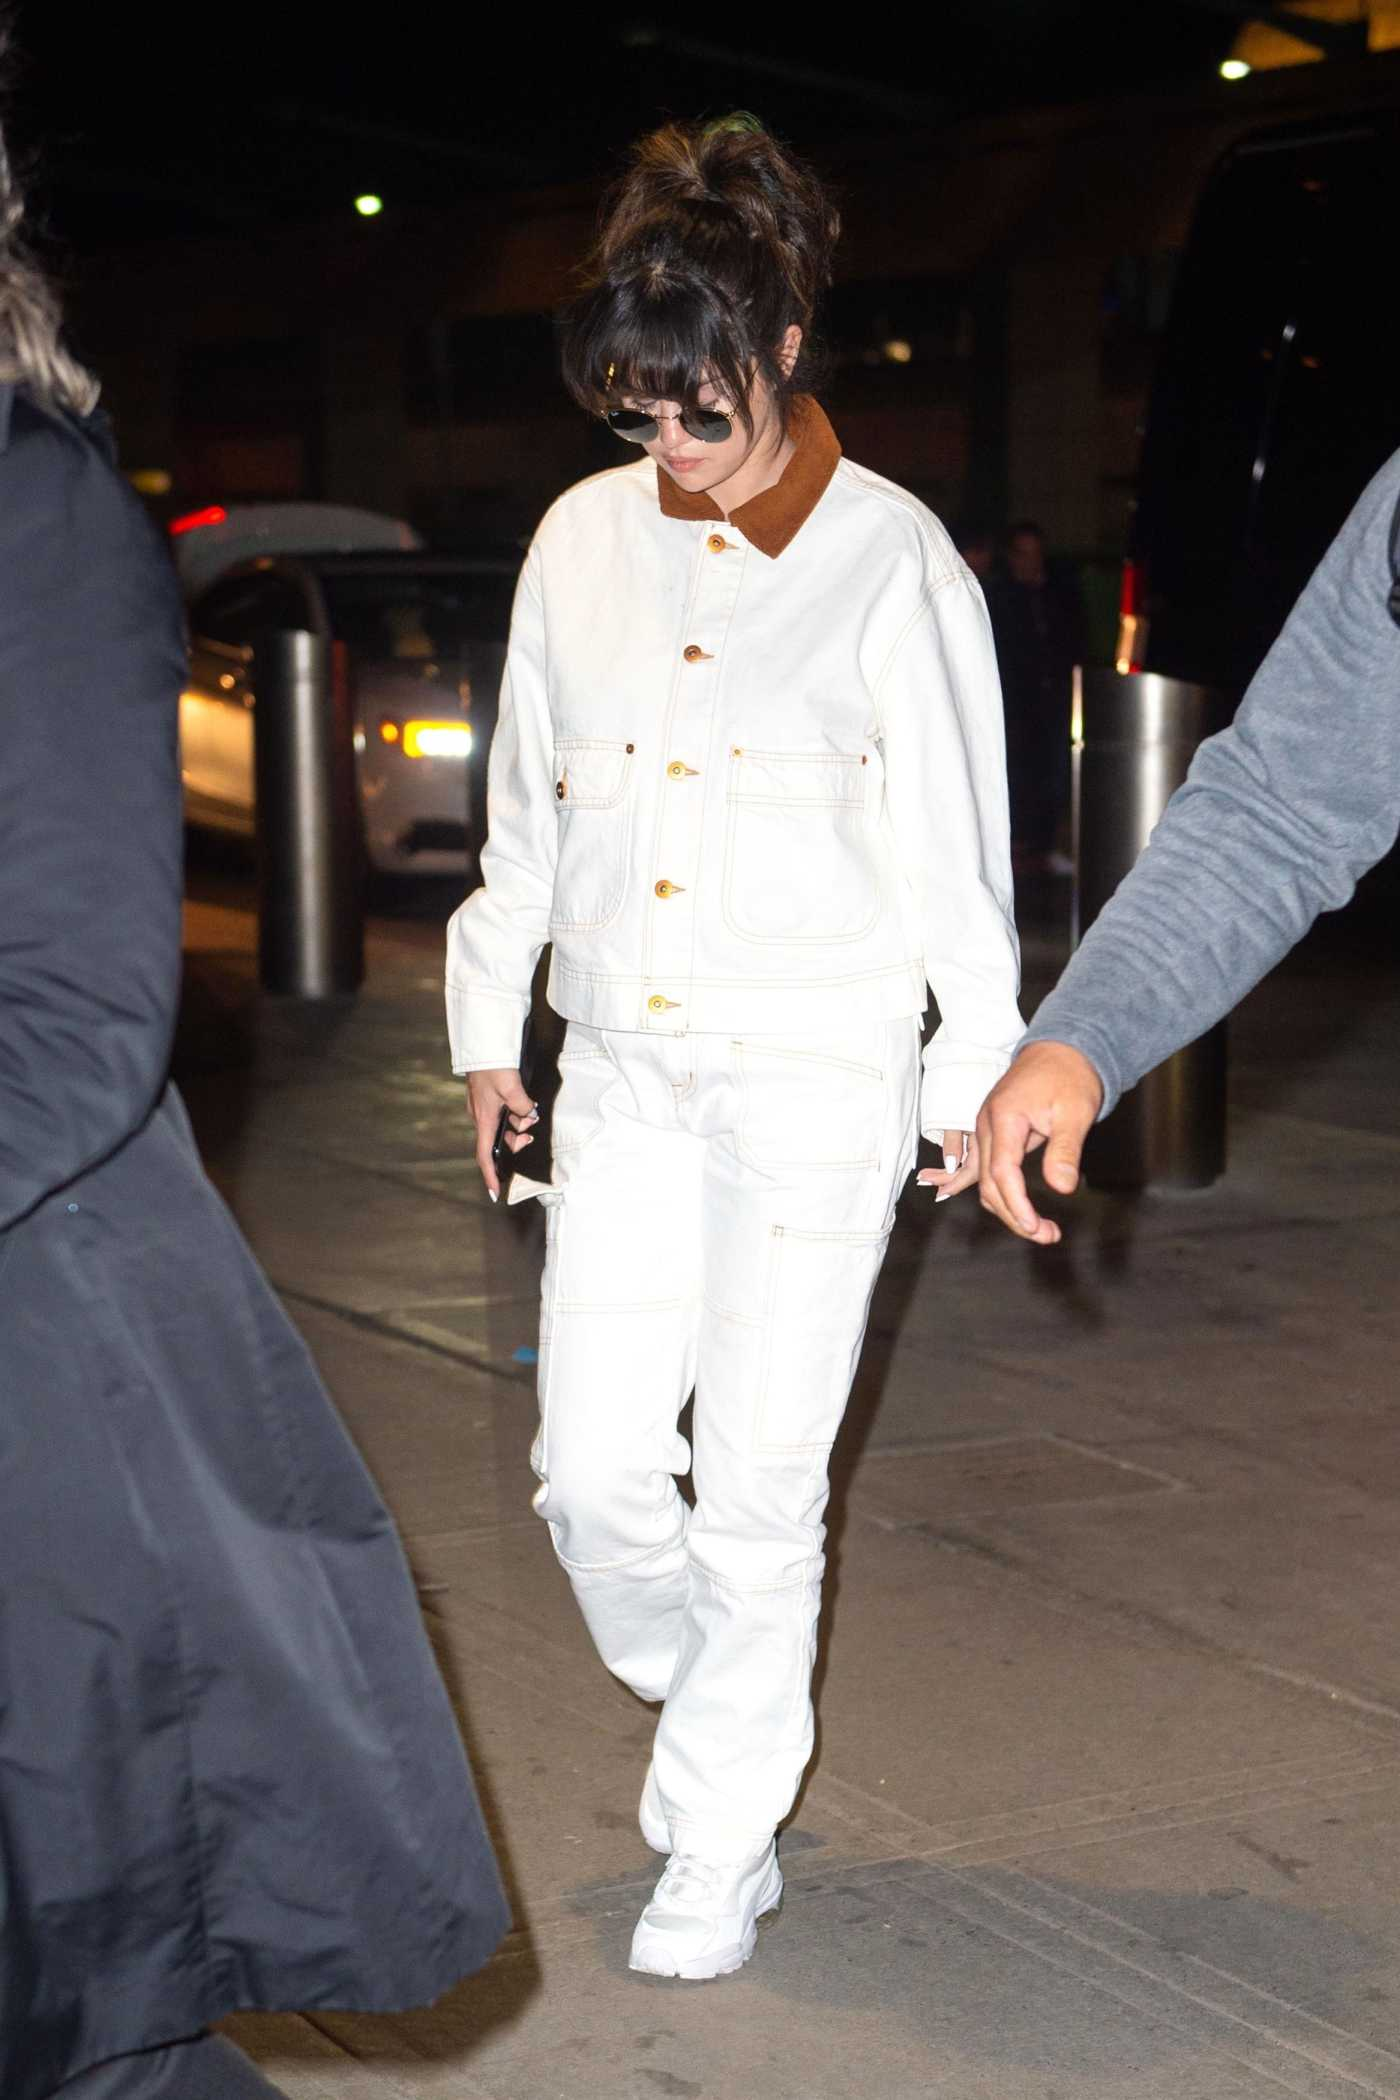 Selena Gomez in a White Suit Arrives at JFK Airport in New York 01/15/2020